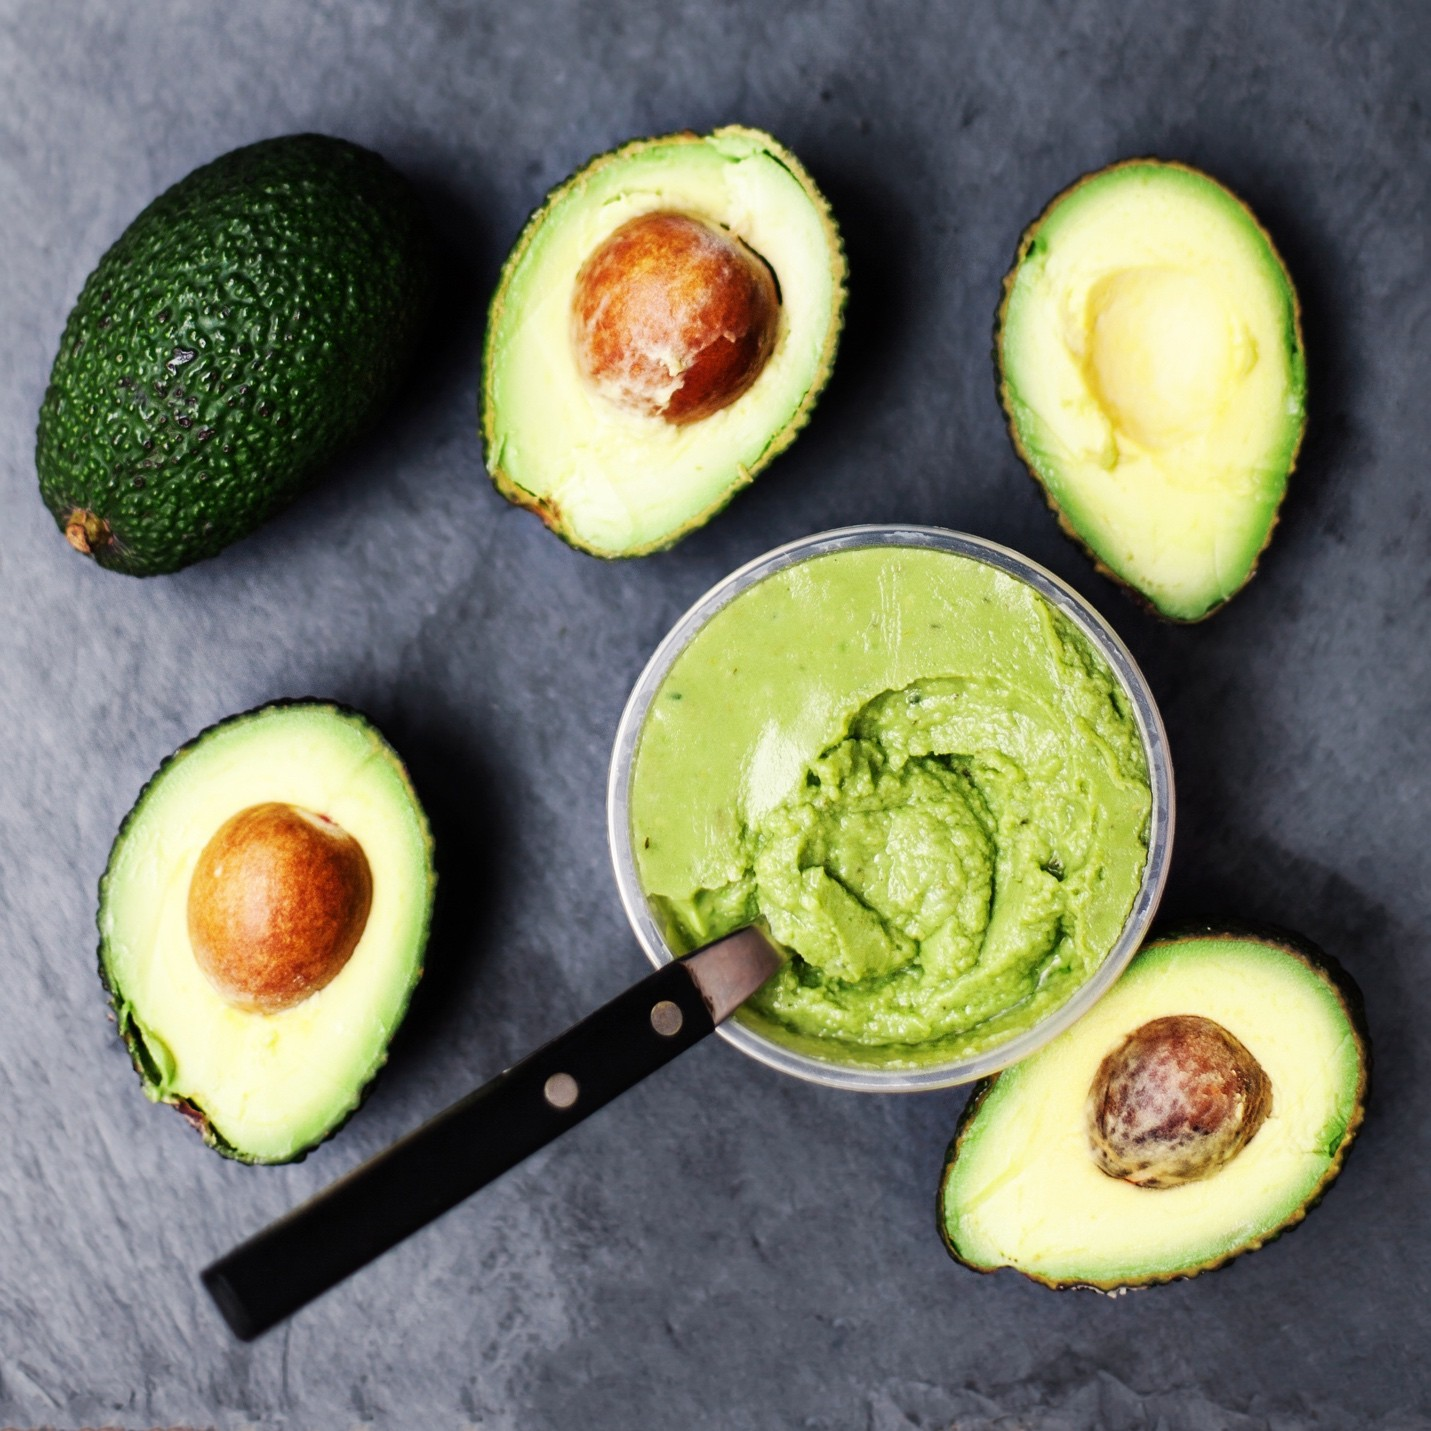 avocadoes - Top 20 Natural Foods To Help You Manage Your Diabetes Effectively